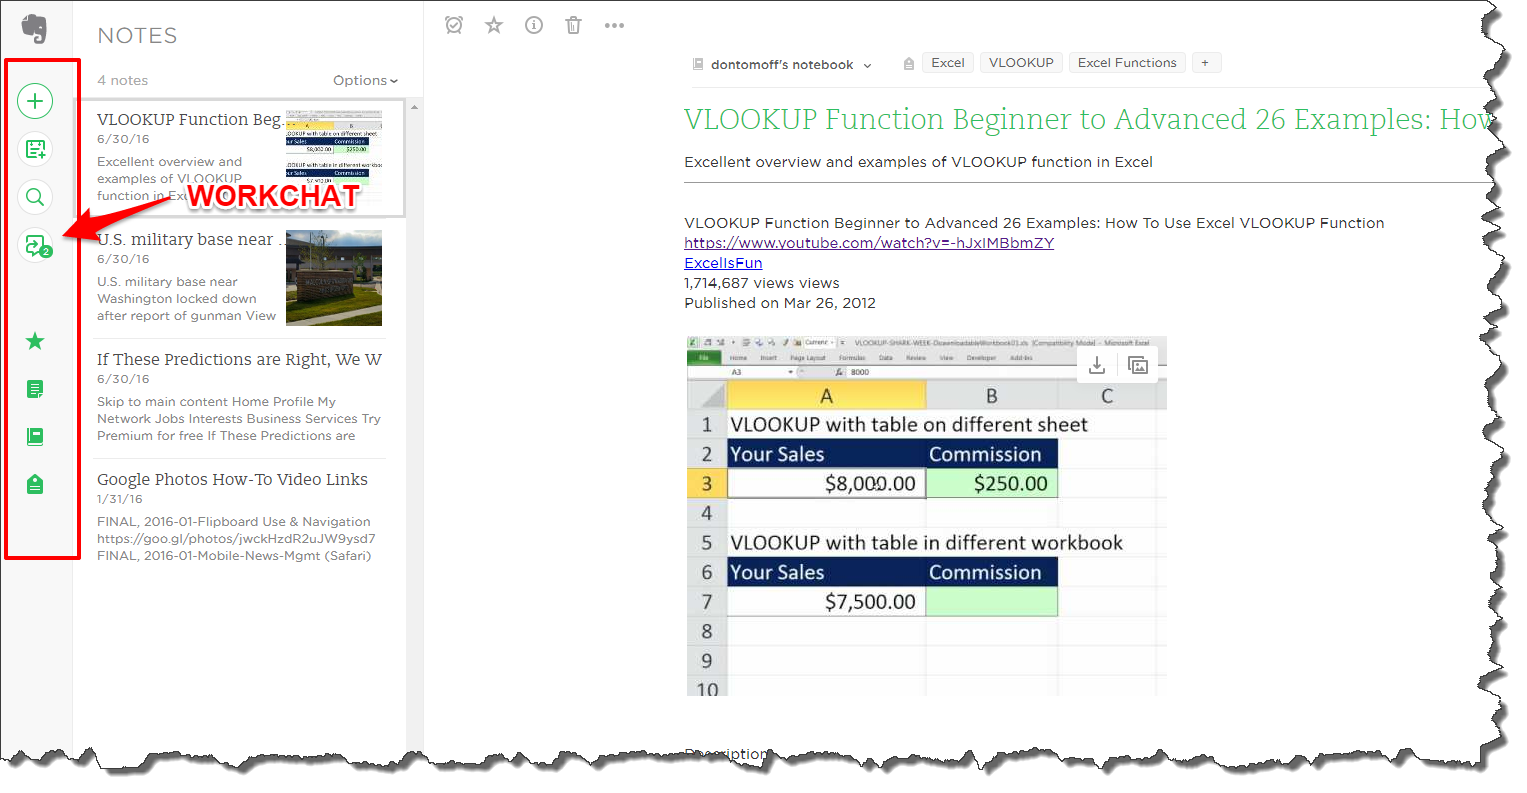 Workbooks shared workbook excel : How To: Using Evernote WorkChat for Collaboration – Don Tomoff ...